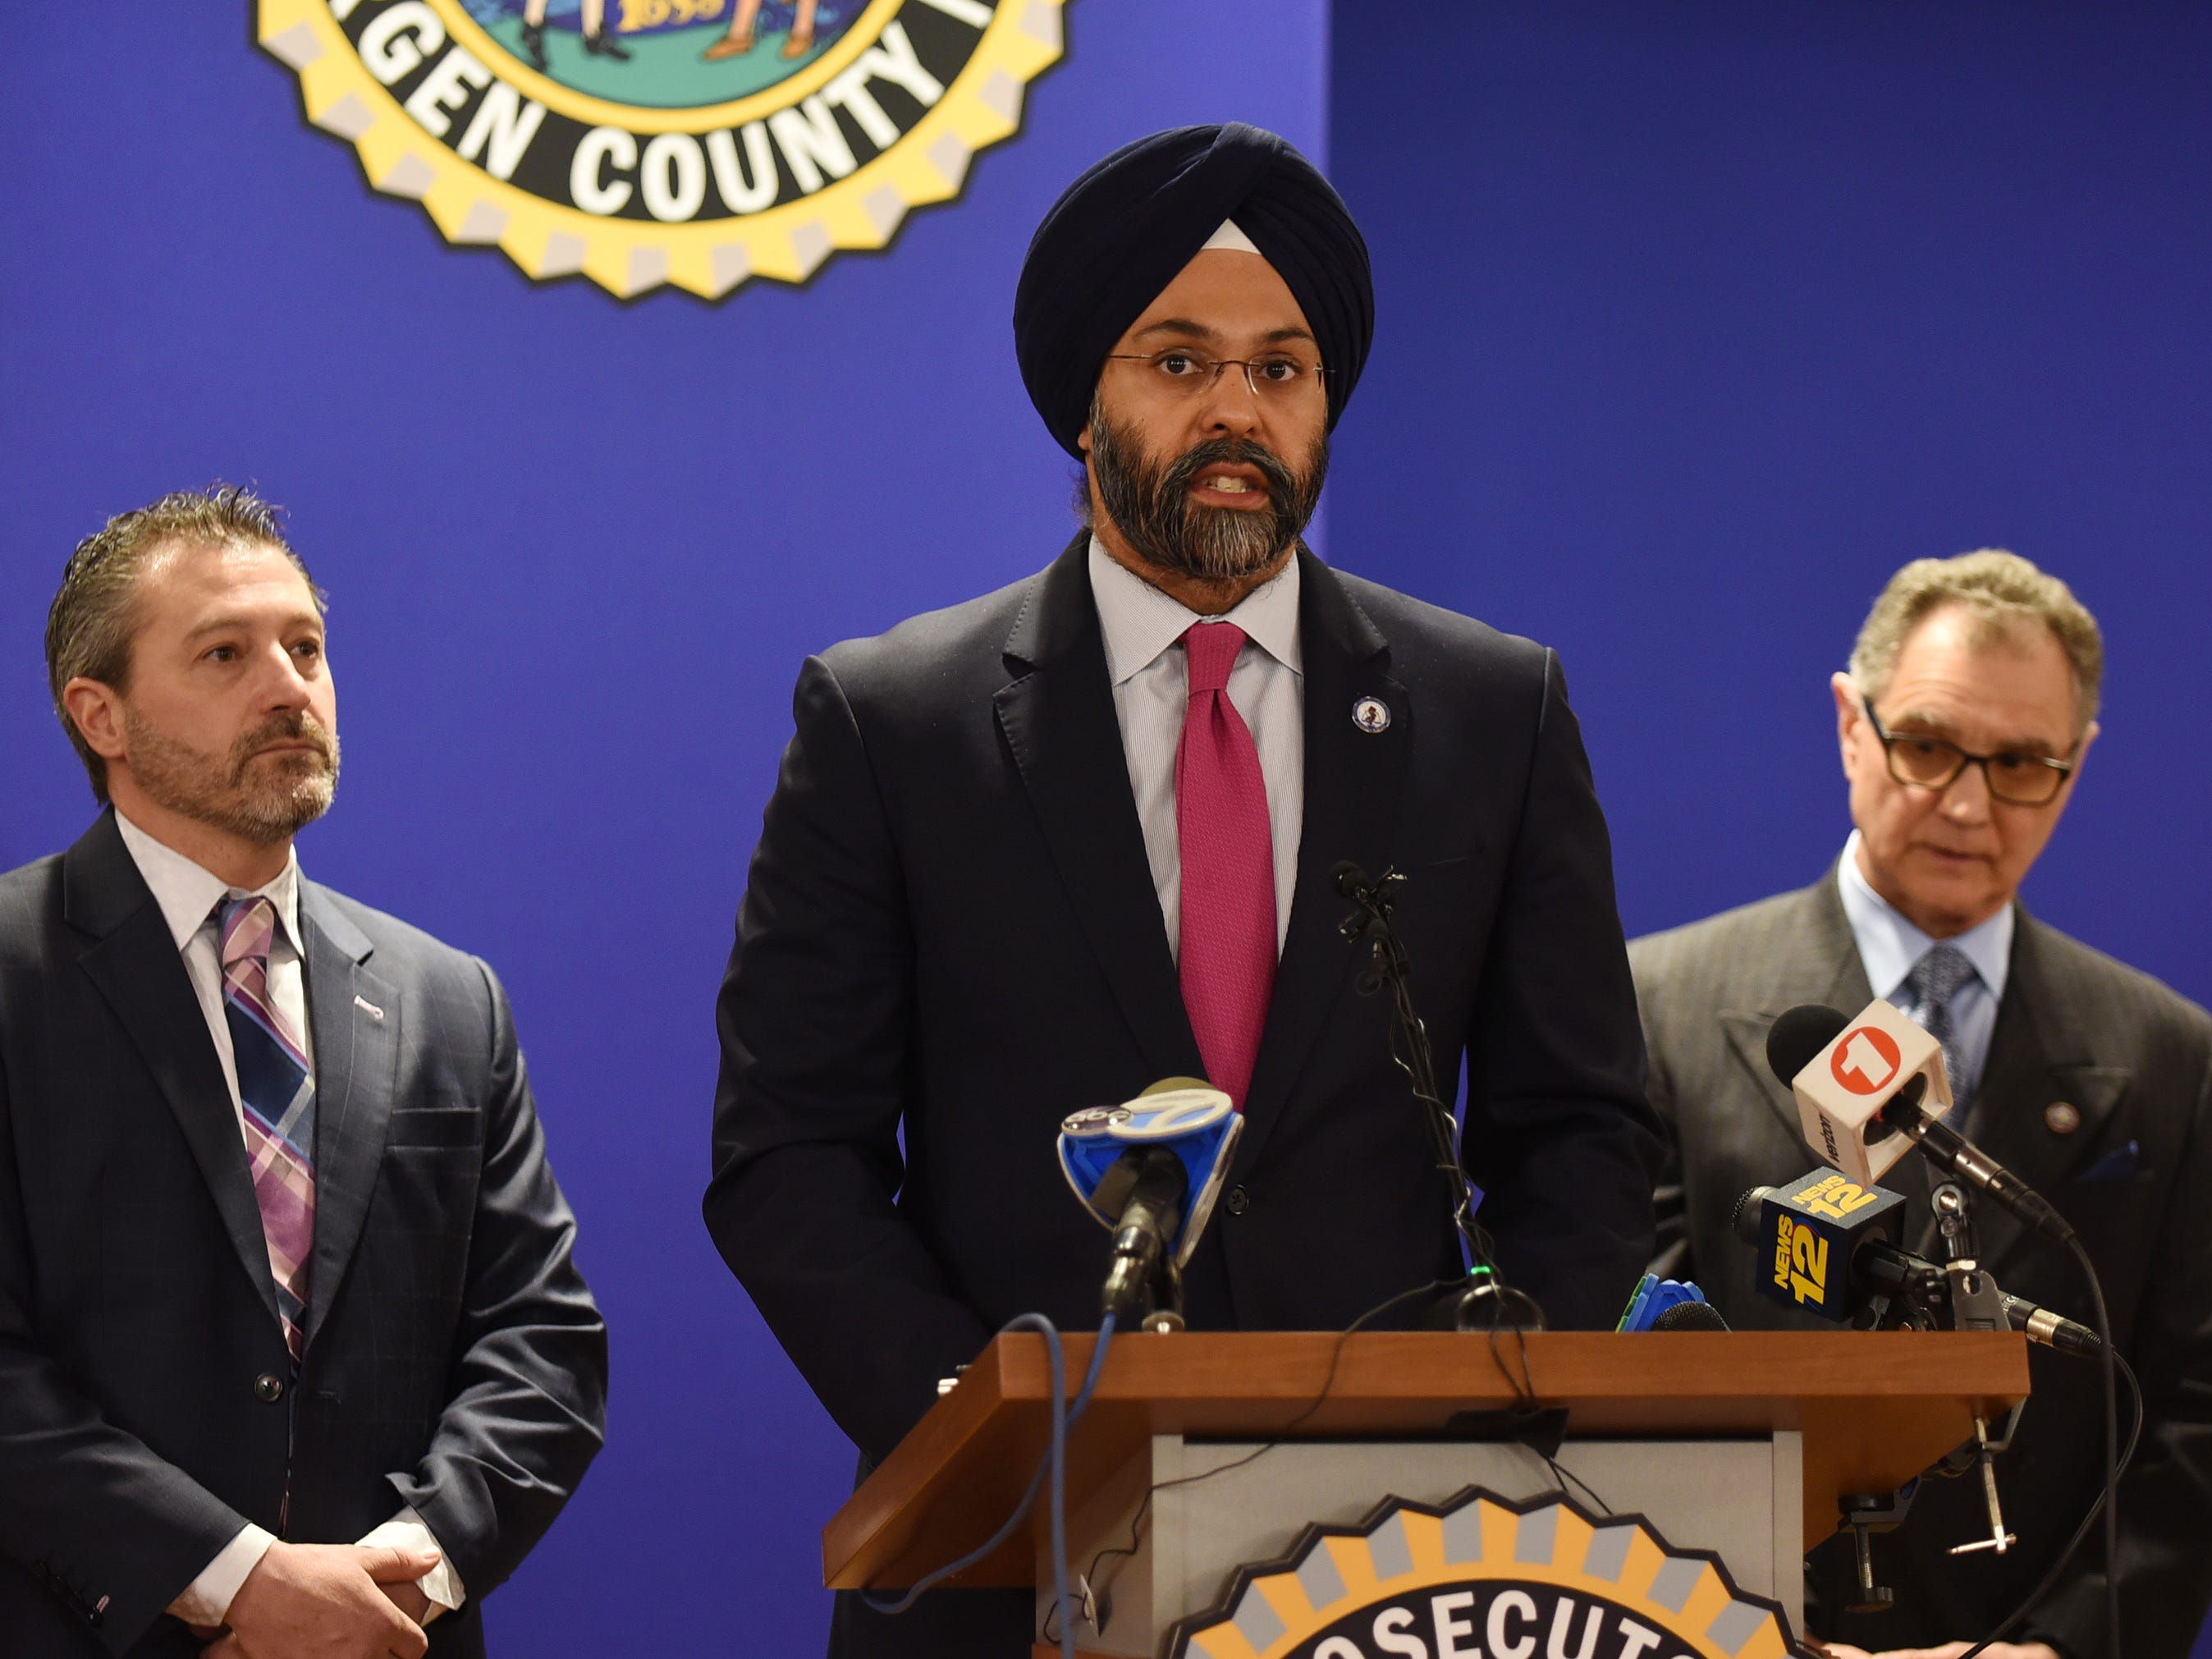 Attorney General Gurbir S. Grewal speaks to the media as Robert Anzilotti (L), Chief of Detectives at Bergen County Prosecutor's Office and Dennis Calo (R), Acting Bergen County Prosecutor, listen during a press conference to announce the expansion of the Bergen County Cold Case Homicide Unit at Bergen County Plaza in Hackensack on 4/4/19.